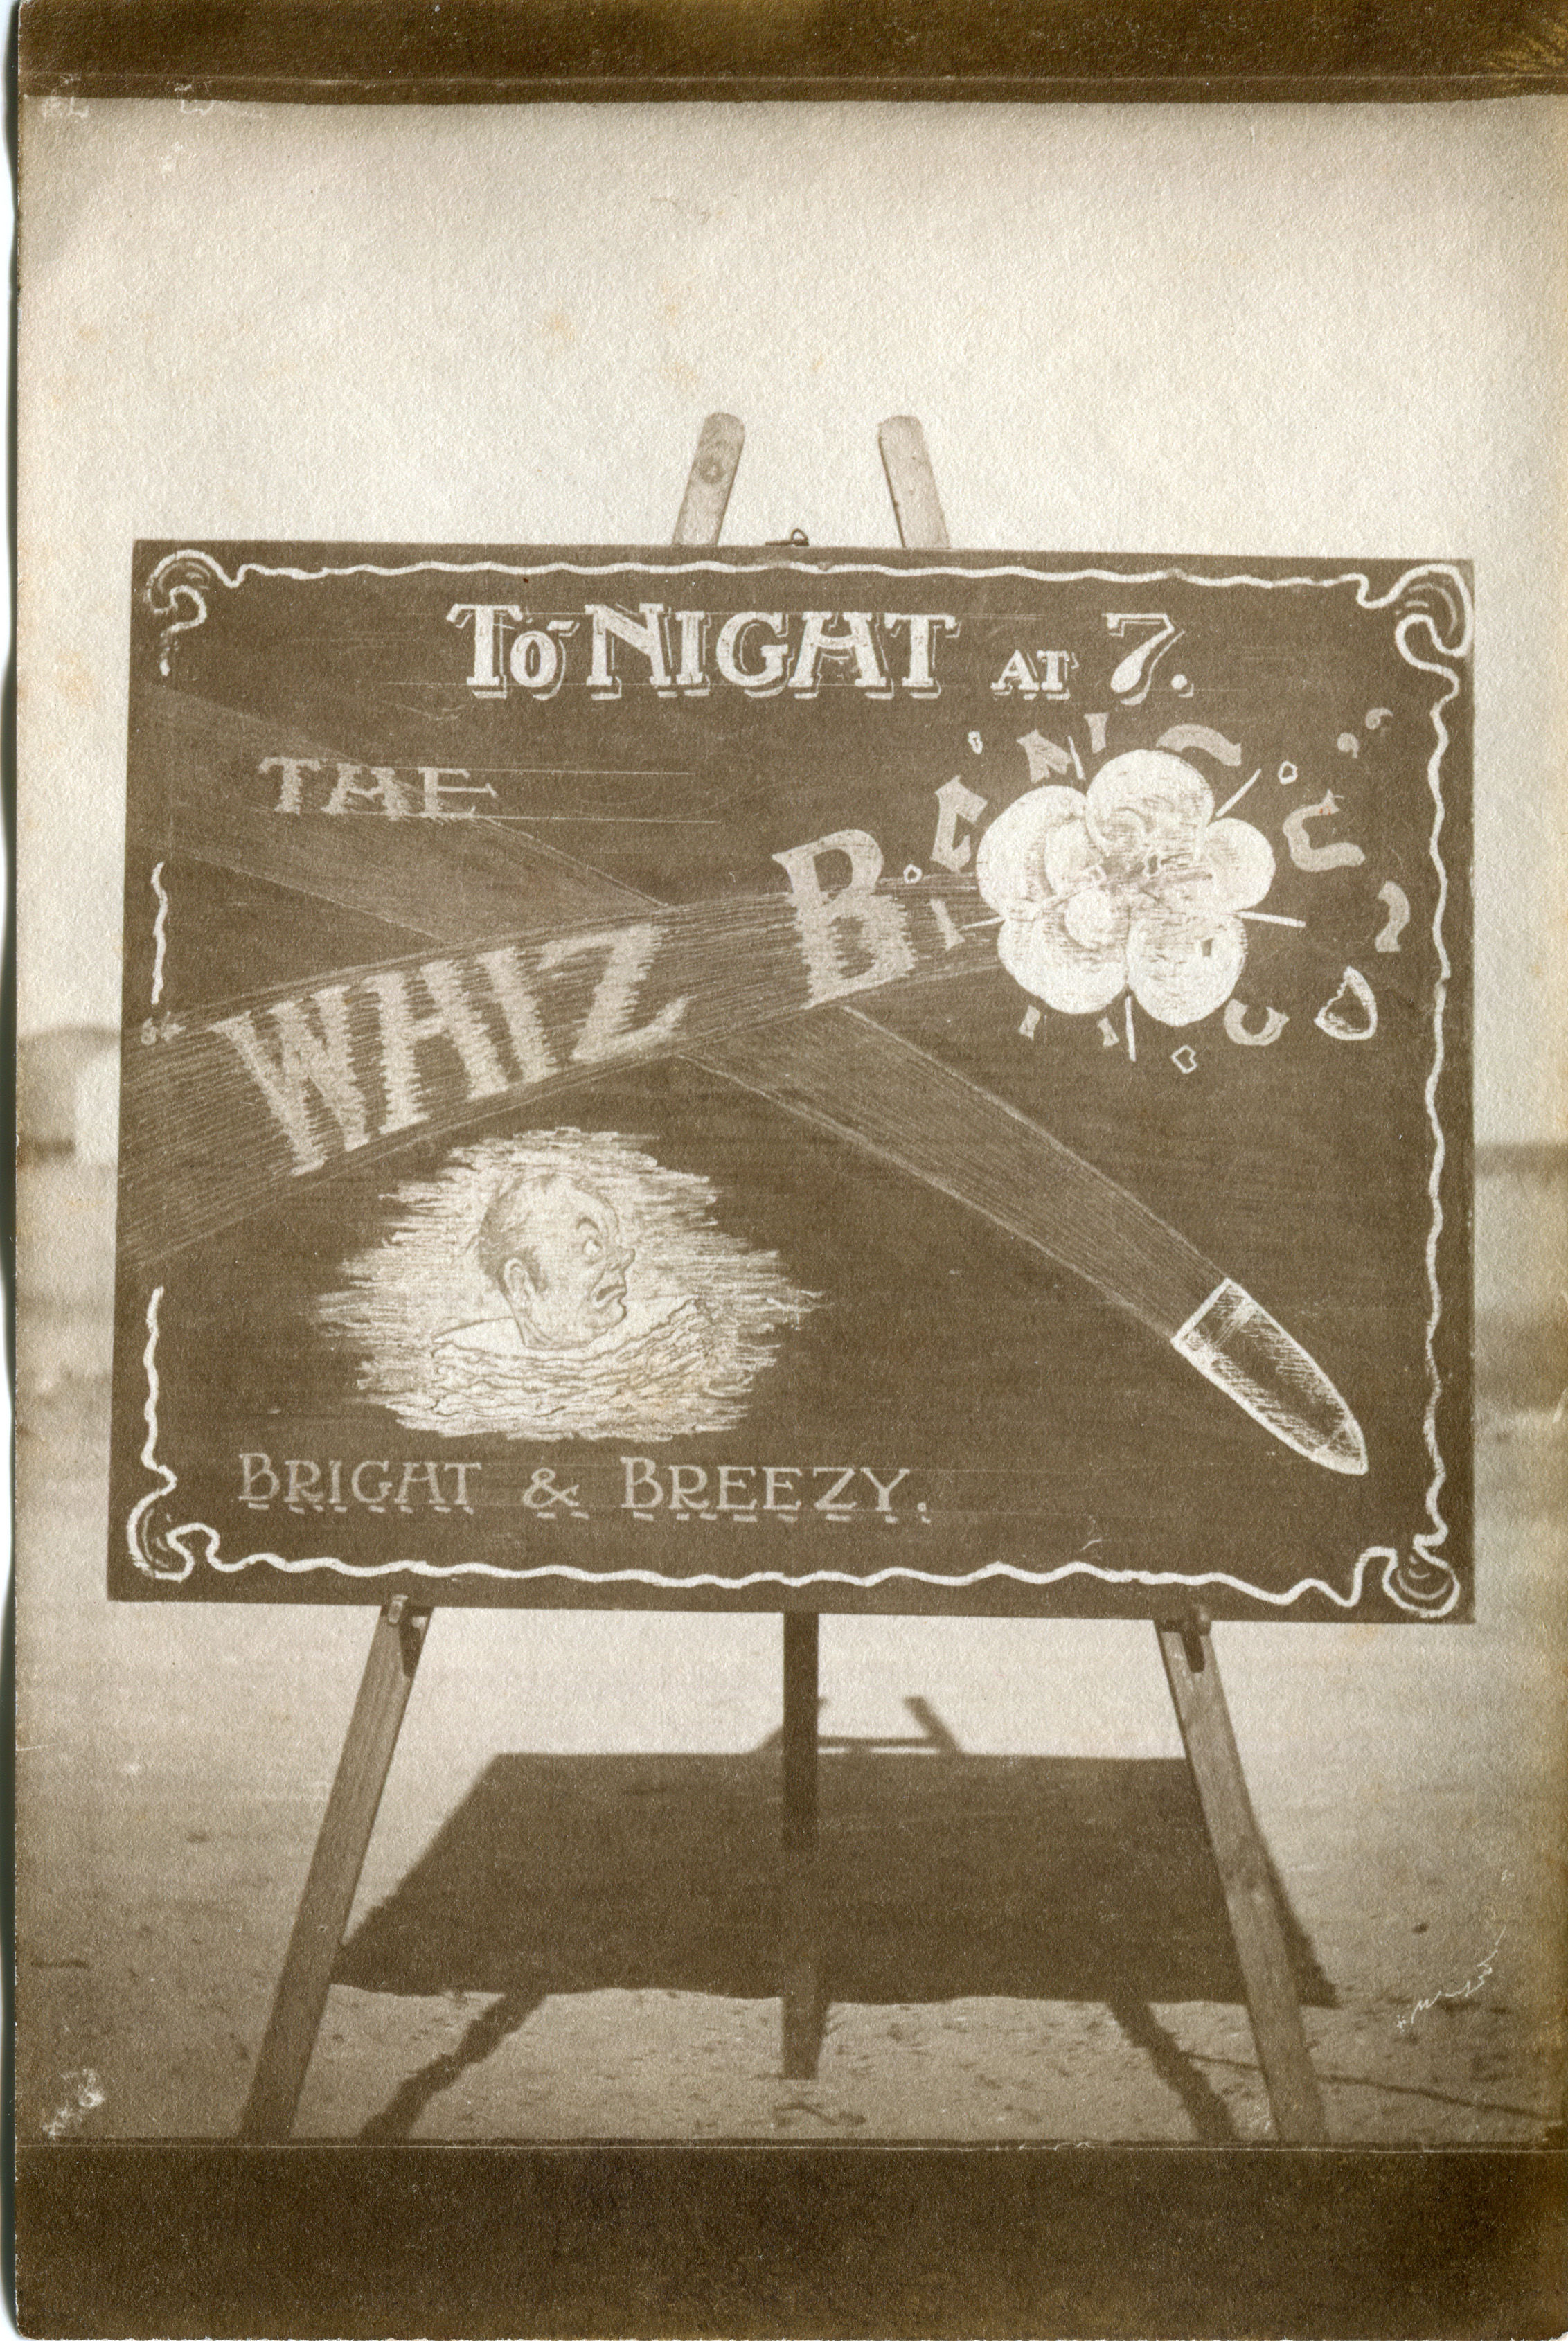 The Whiz Bangs playing at the Desert Mounted Corps Rest Camp Concert Party, 13 September 1918.